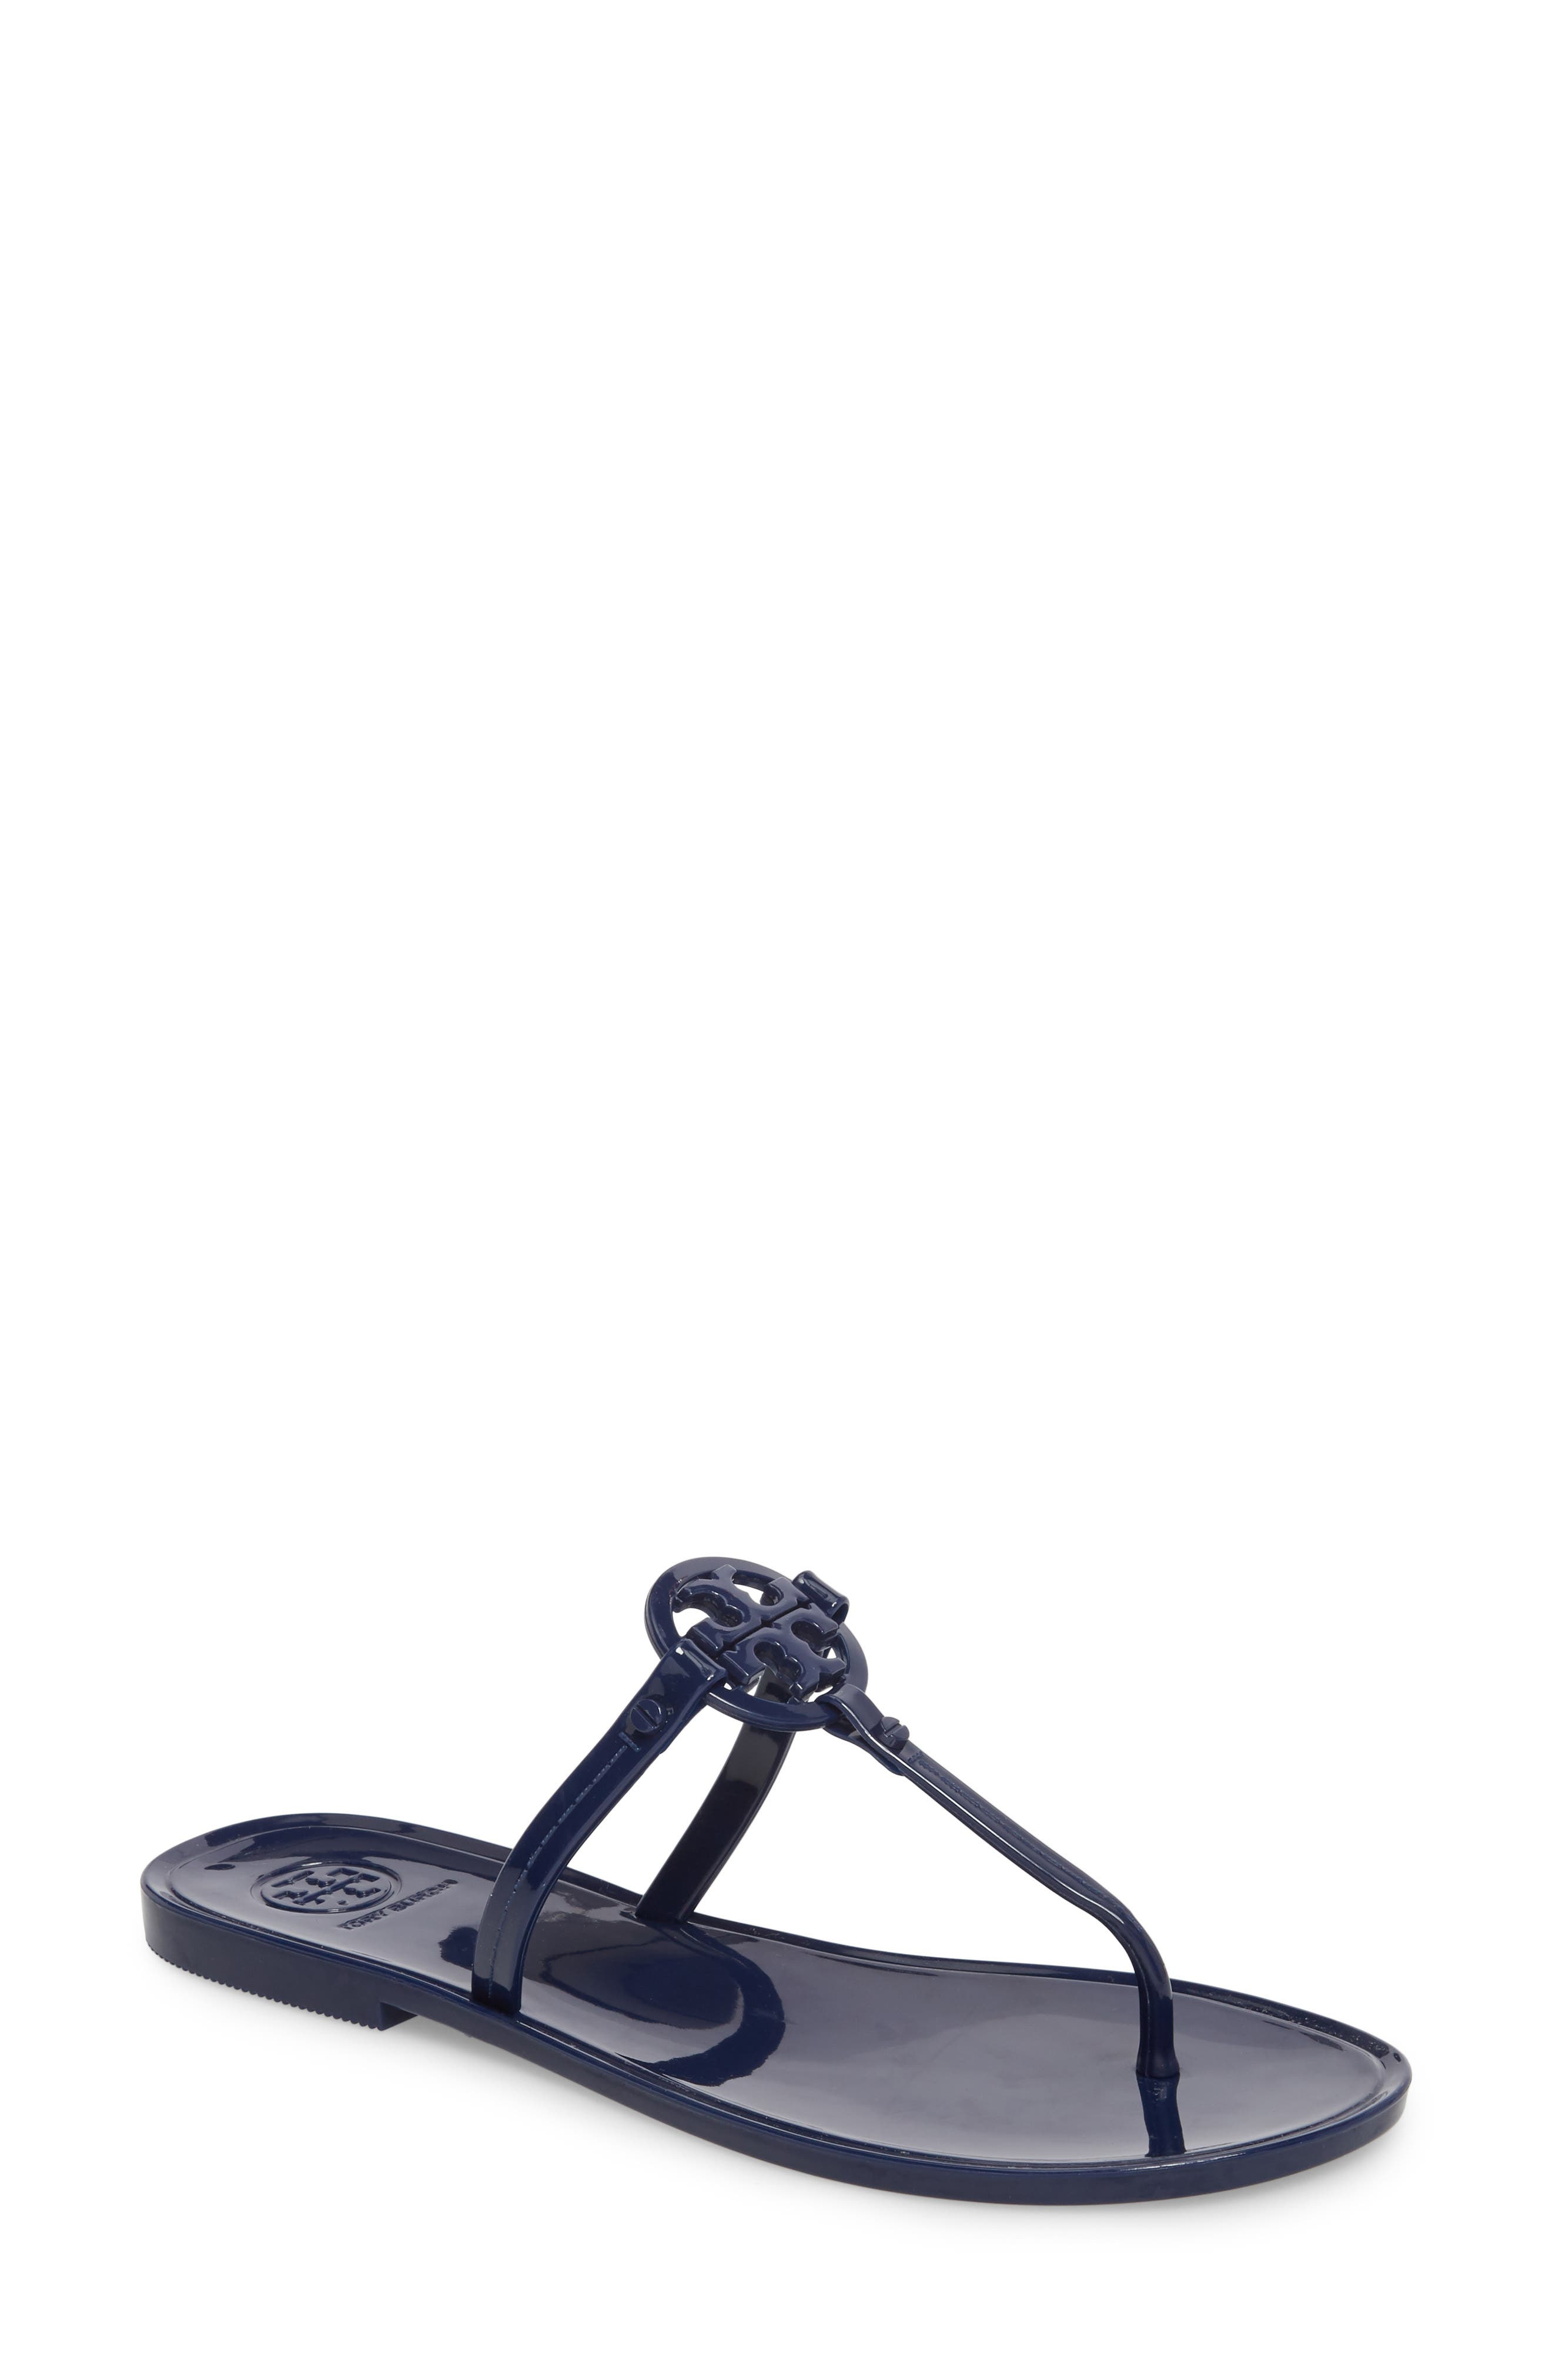 'Mini Miller' Flat Sandal,                         Main,                         color, BRIGHT INDIGO